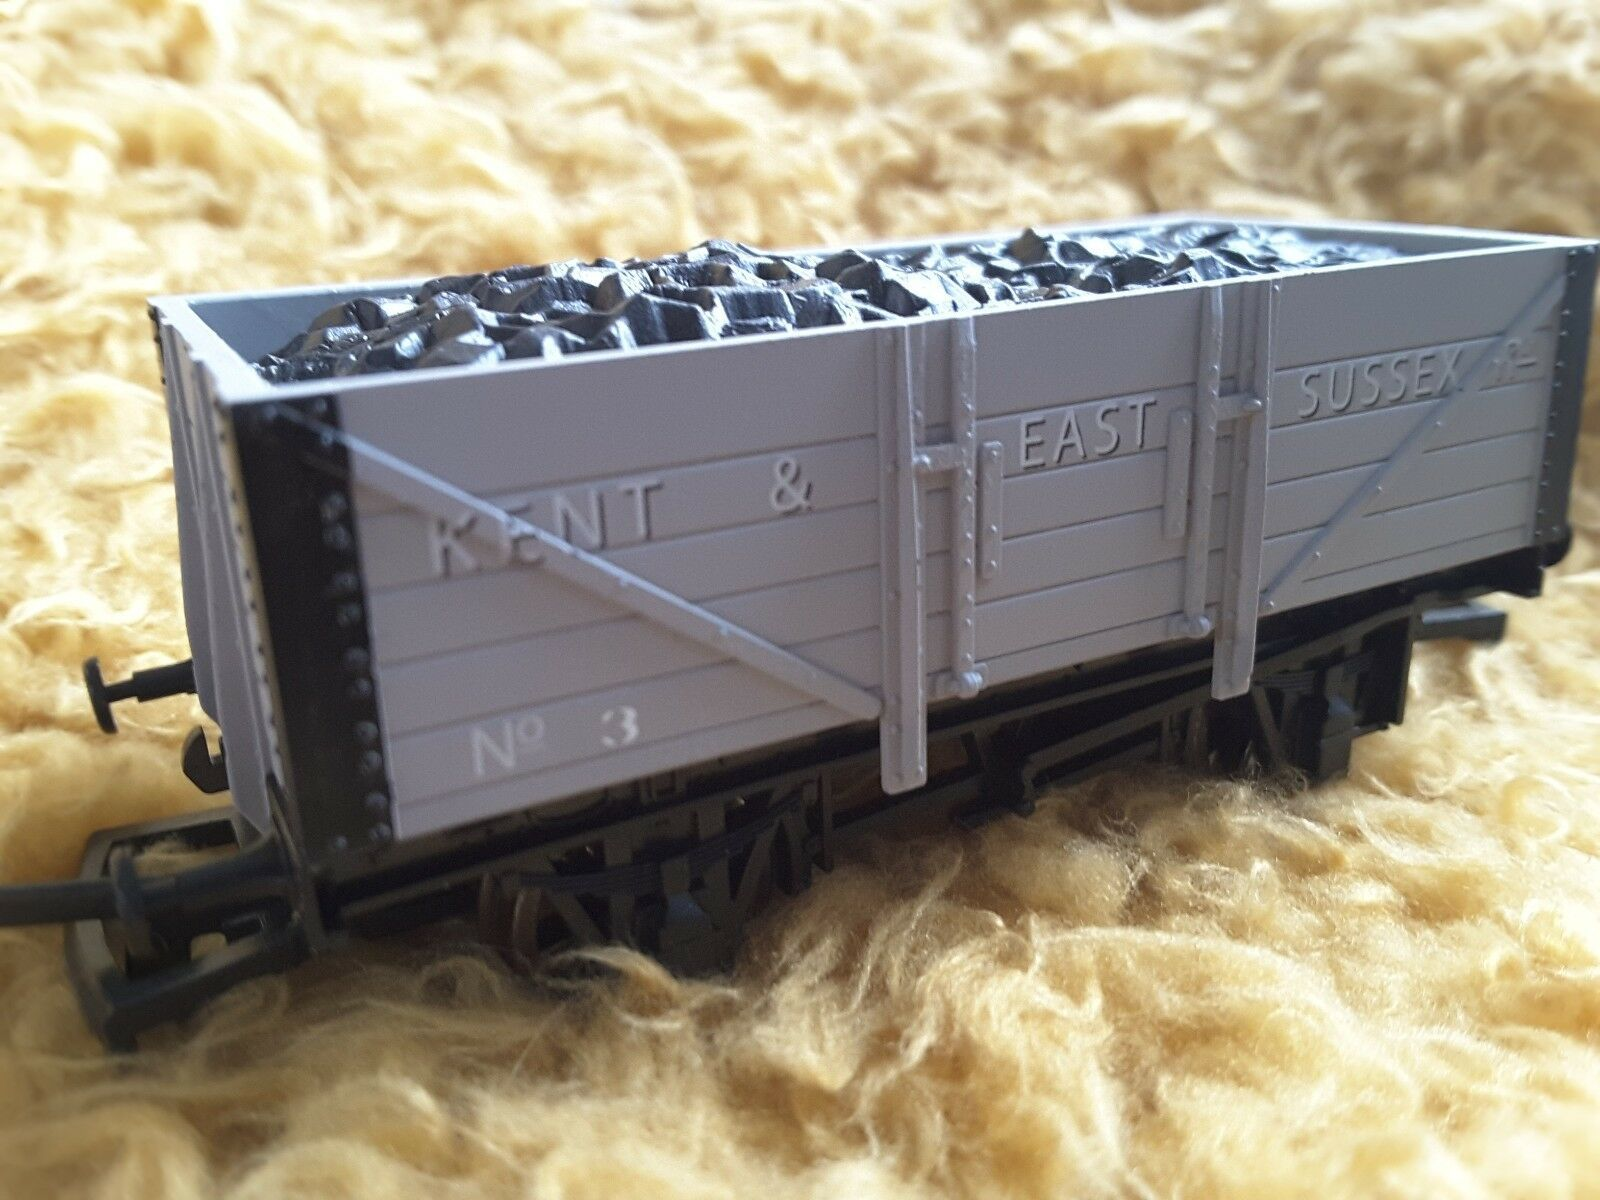 K&ESR 5 Plank Wagon 4 Train - Dapol (5 Plank Wagon) front image (front cover)